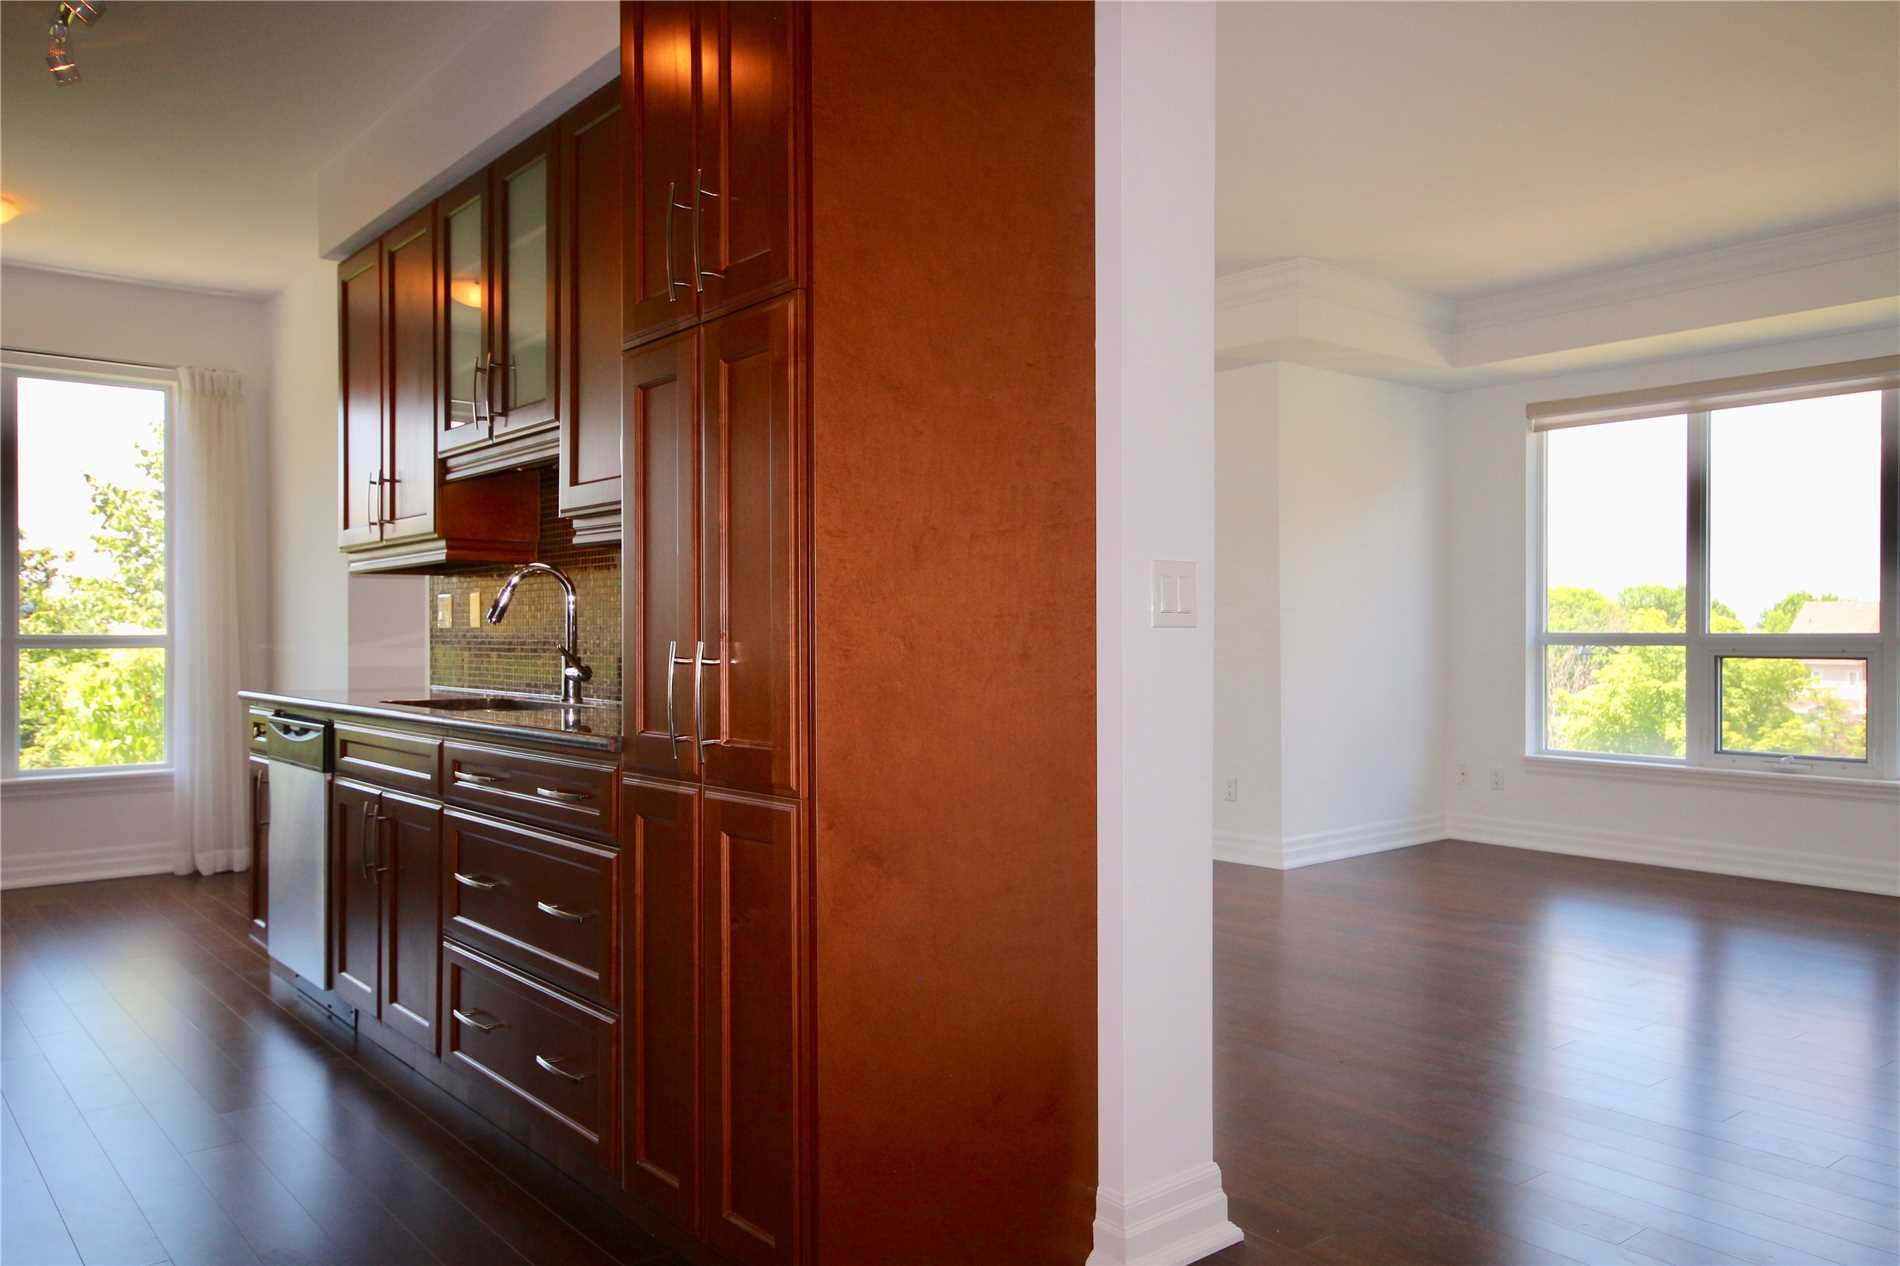 #213-180 John West Way for sale